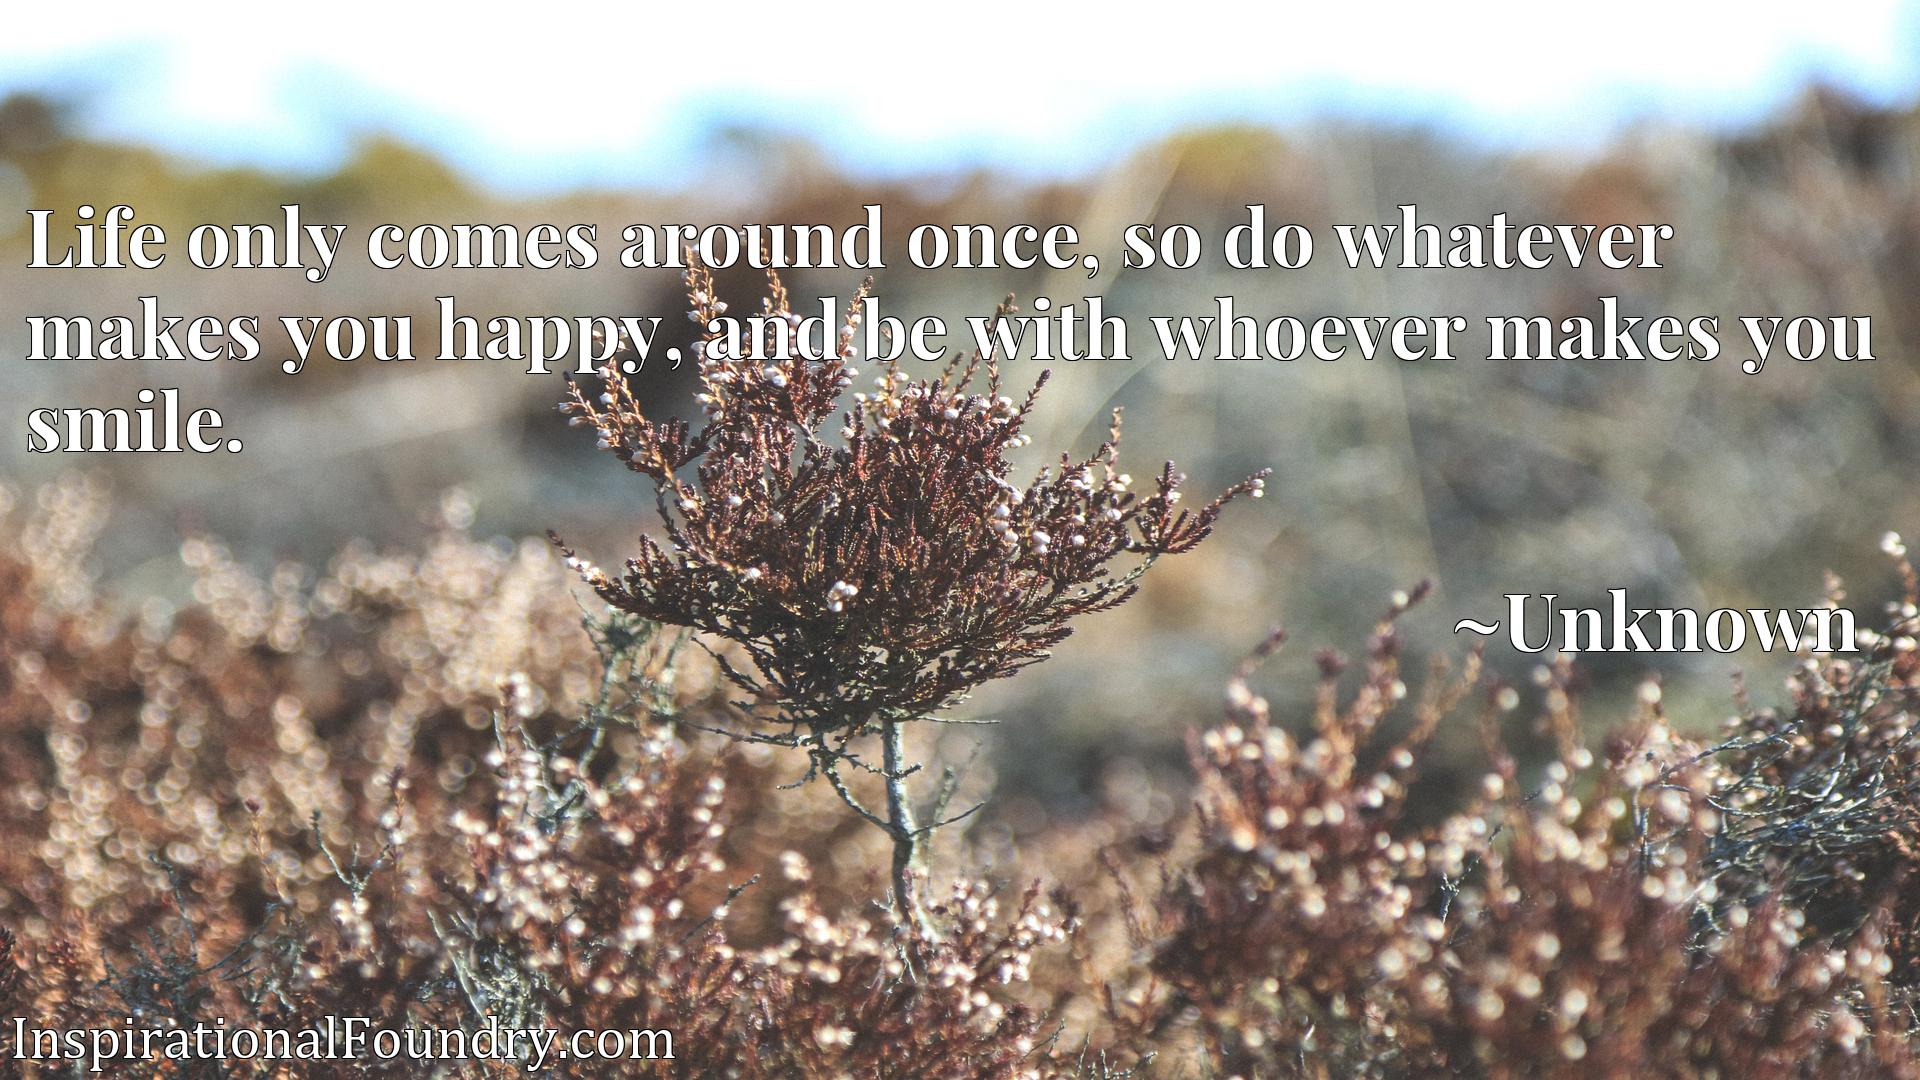 Quote Picture :Life only comes around once, so do whatever makes you happy, and be with whoever makes you smile.